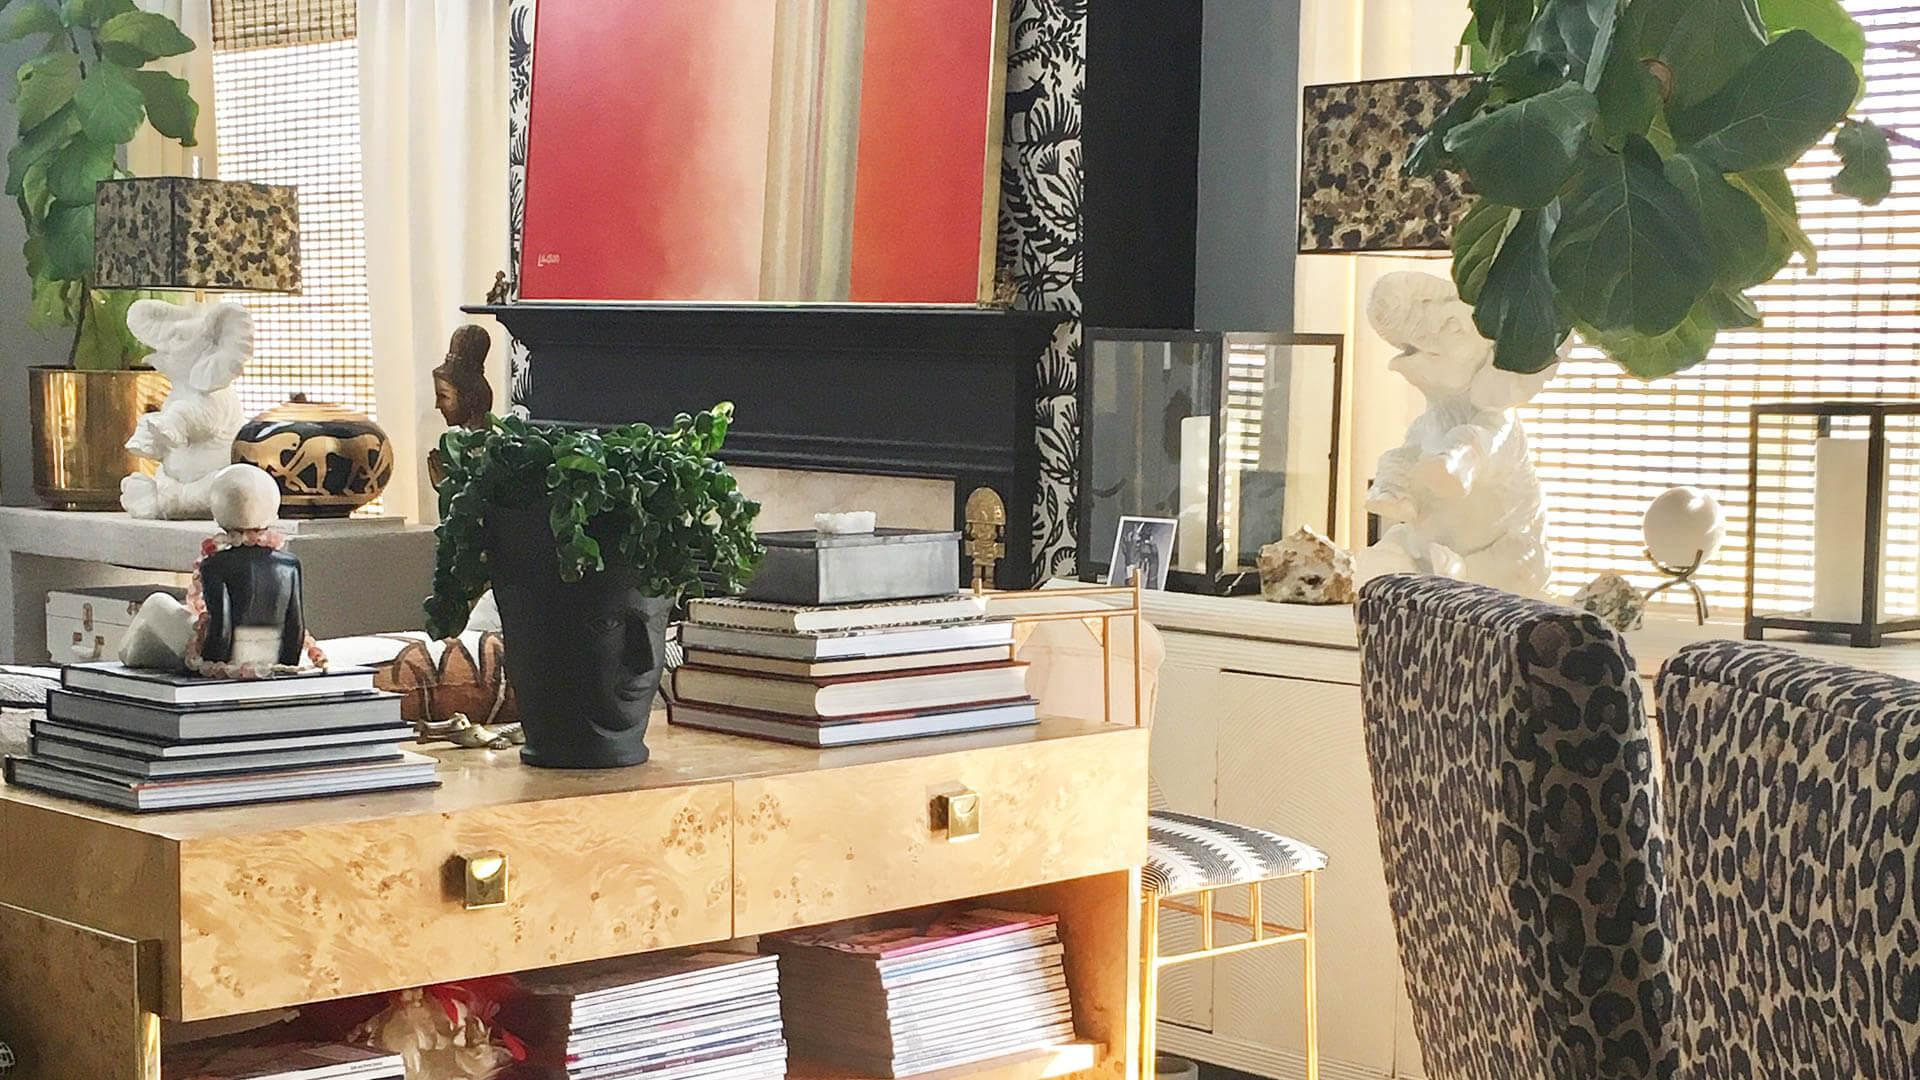 How to decorate your home like an interior designer with thrift store finds